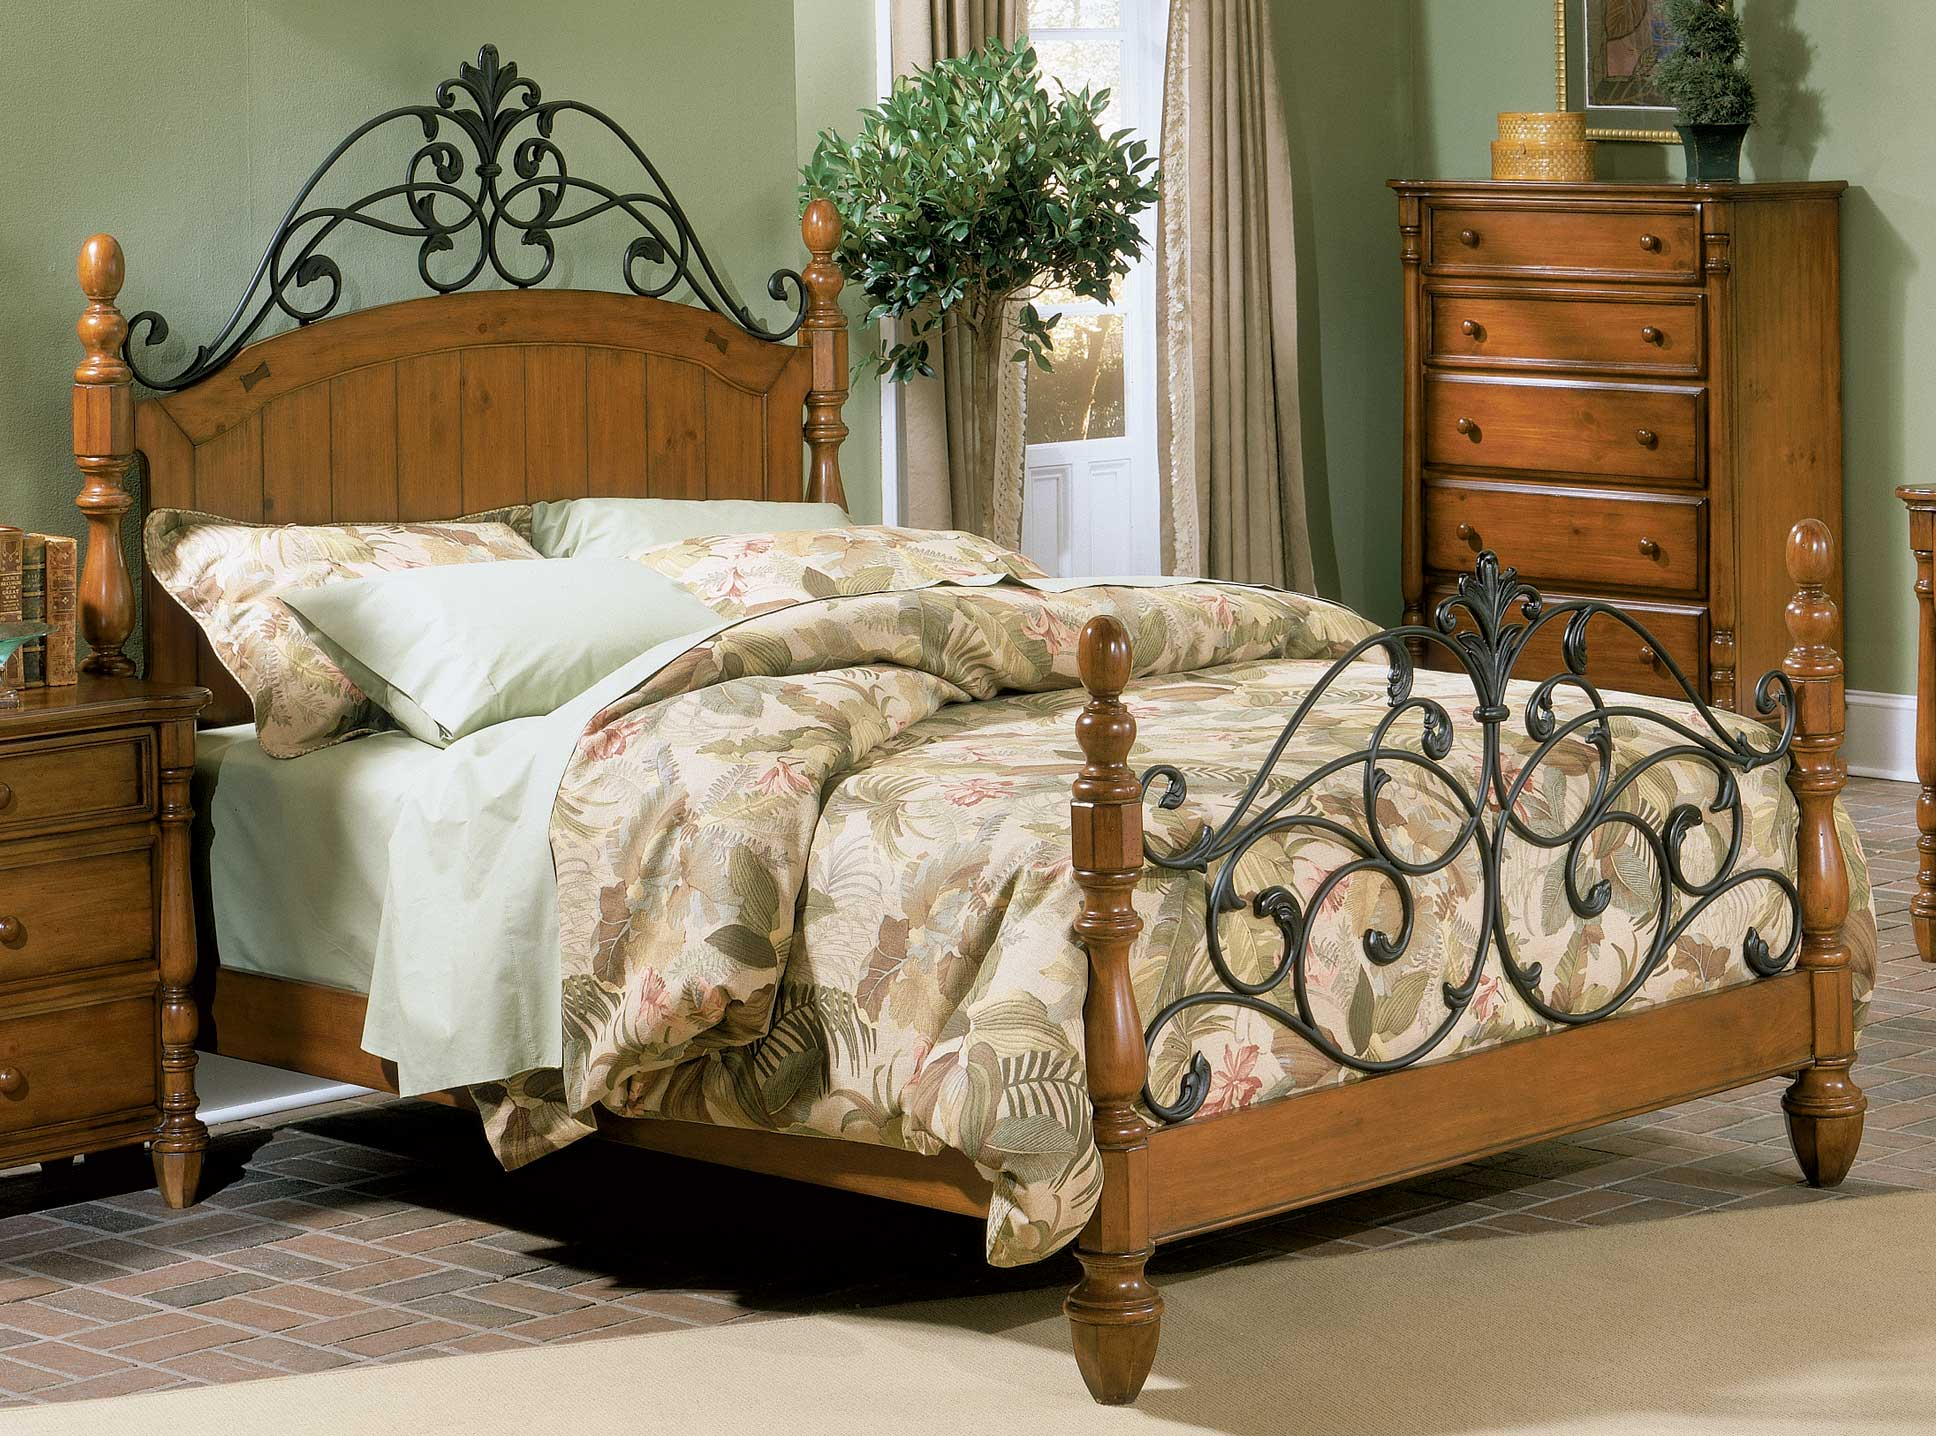 Homelegance Shady Brook Bed with Wood Rails